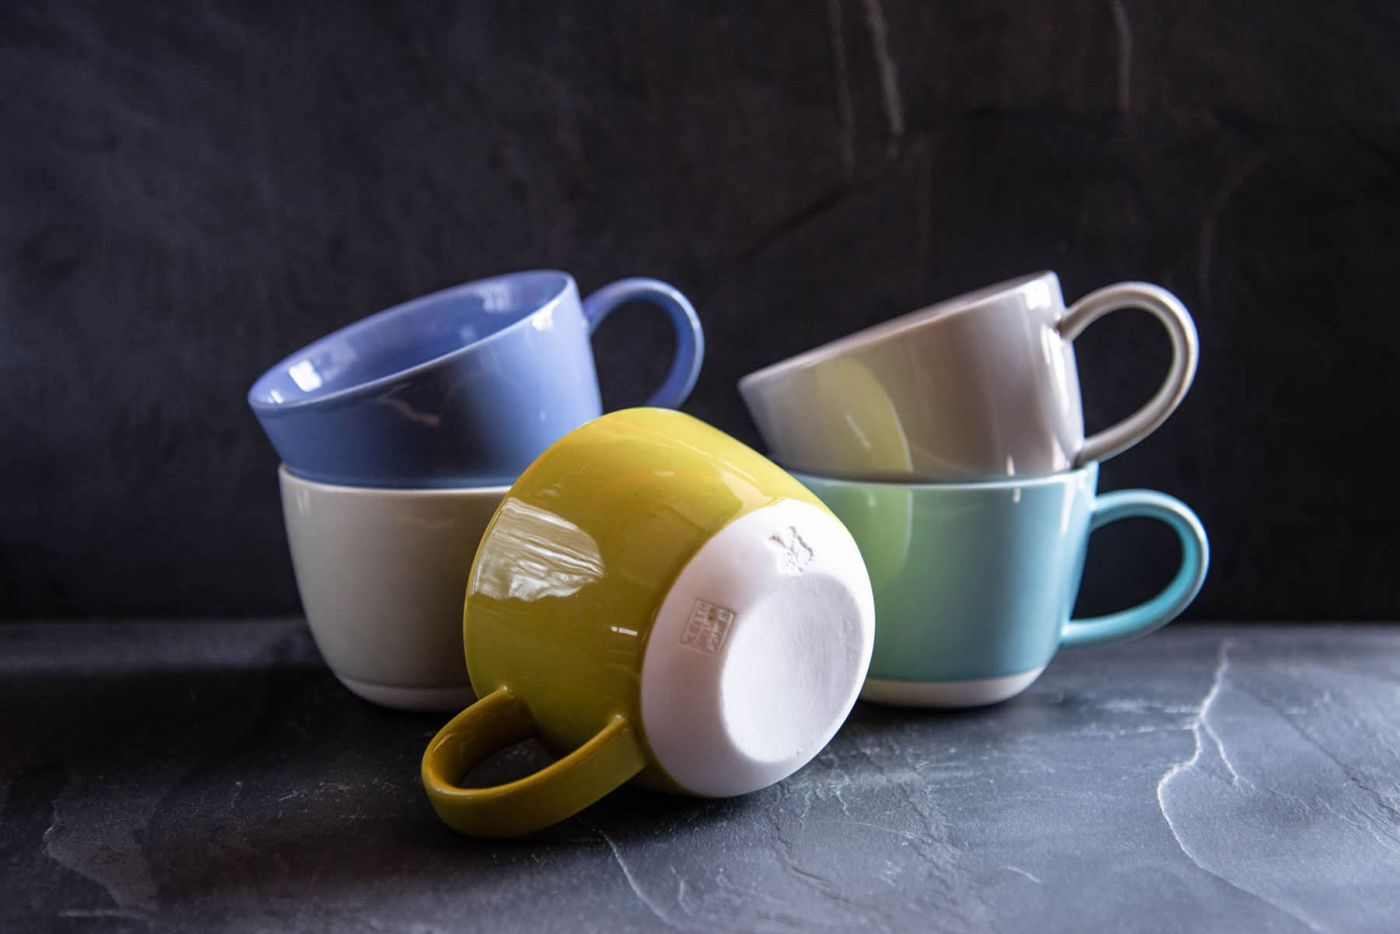 Cobalt Blue National Trust Mug